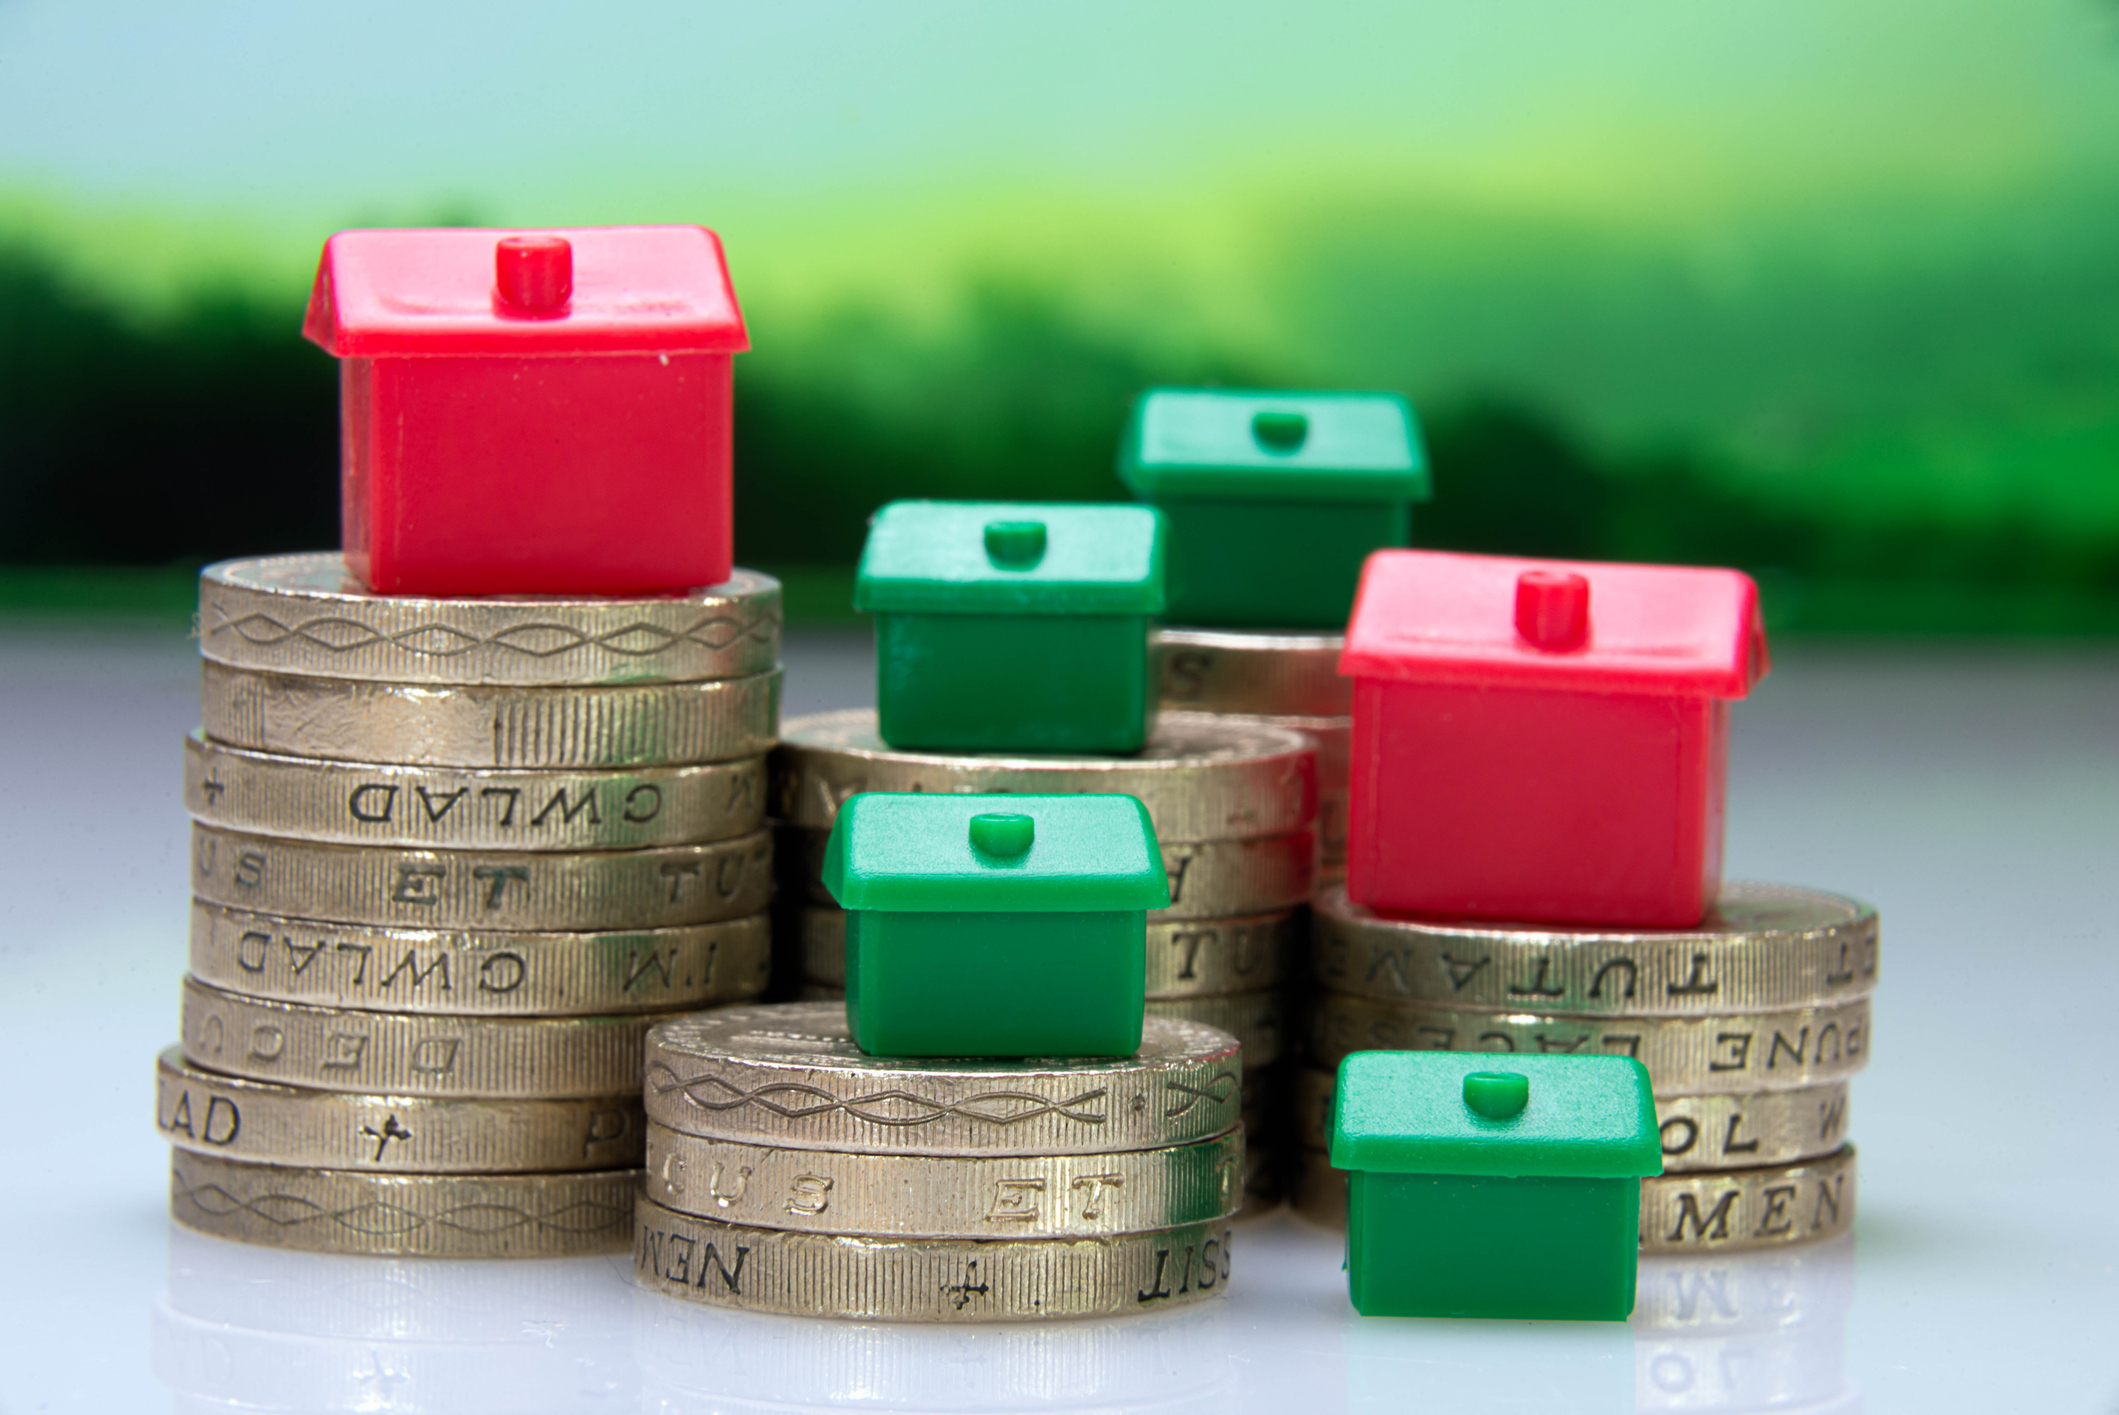 Monopoly houses on pound coins